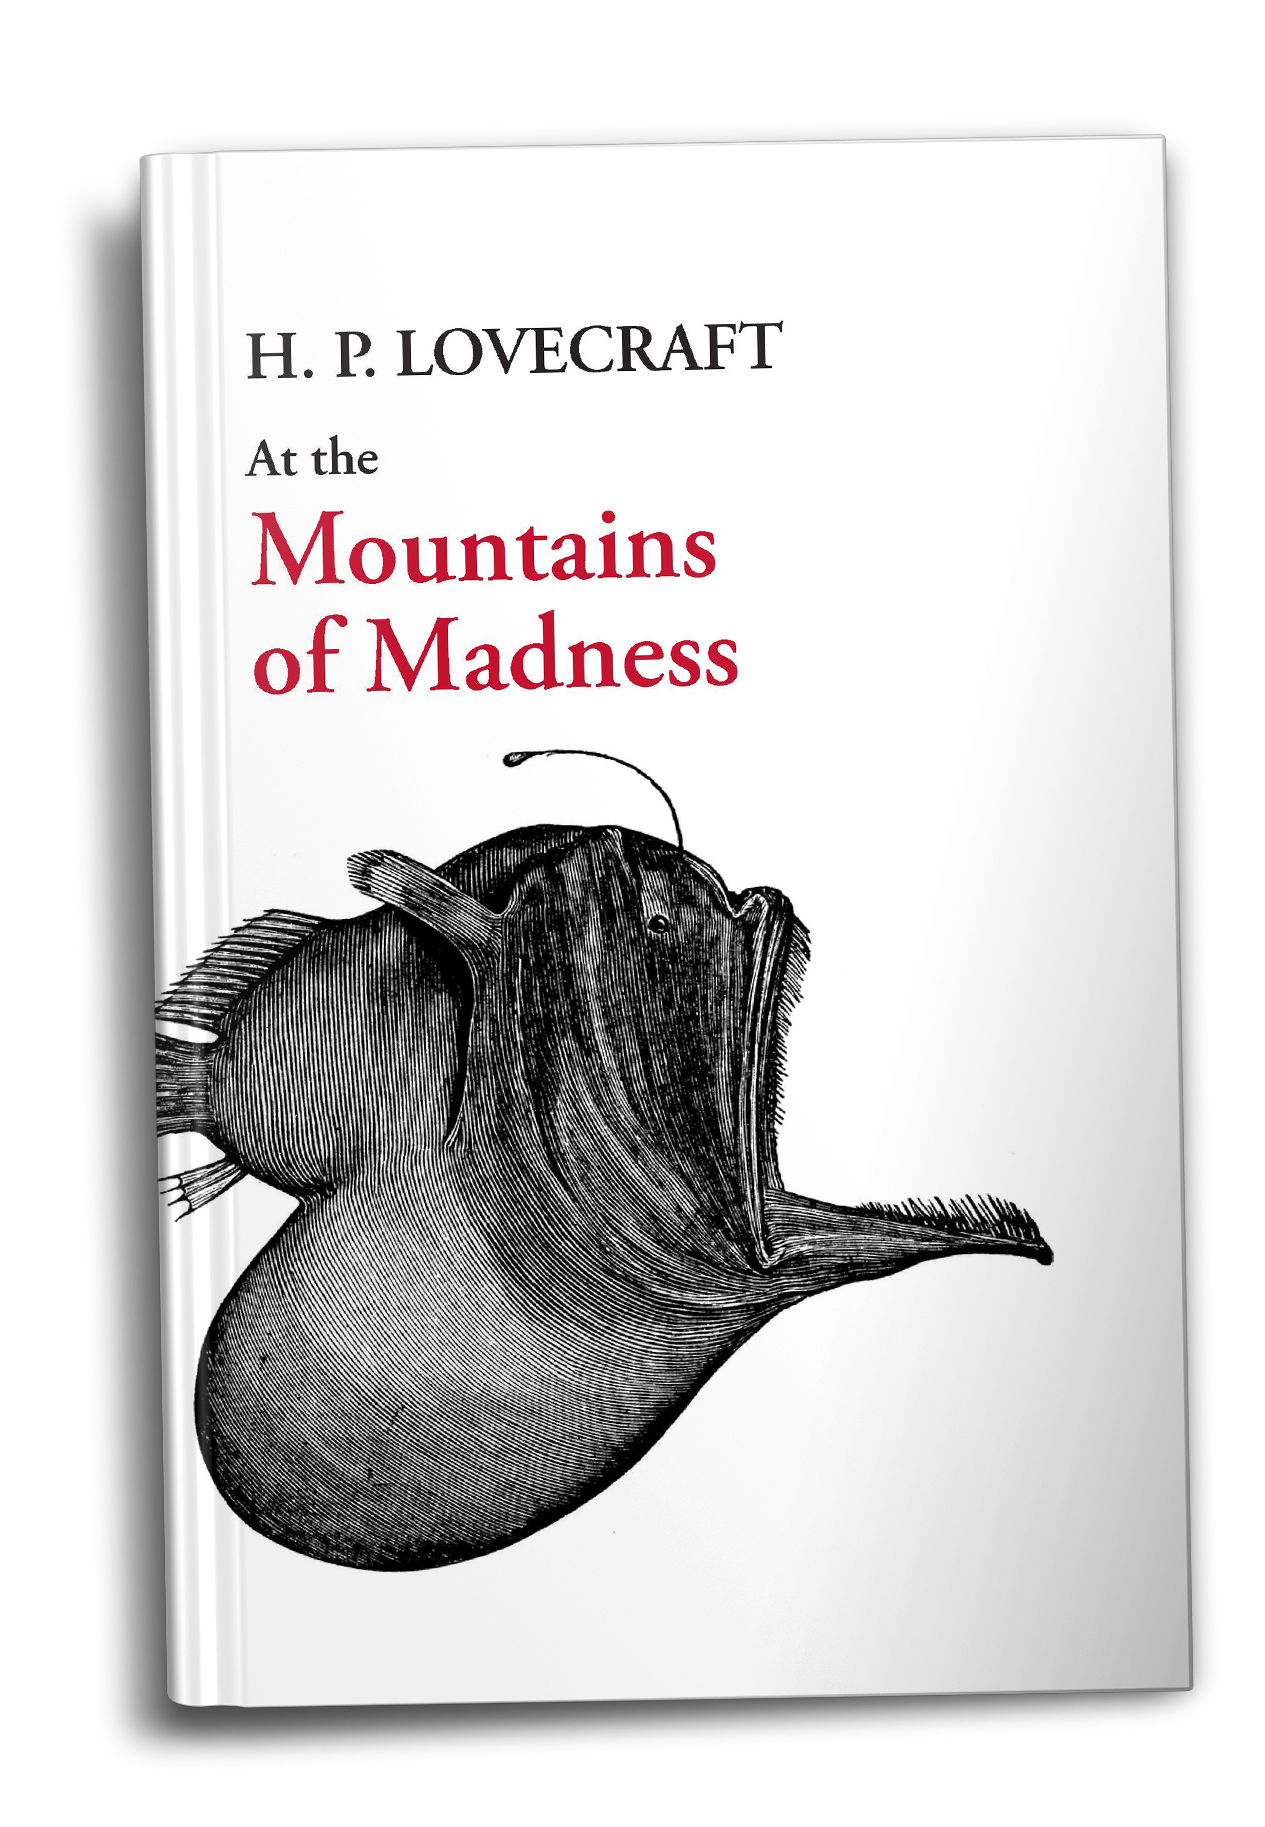 lovecraft book cover 1